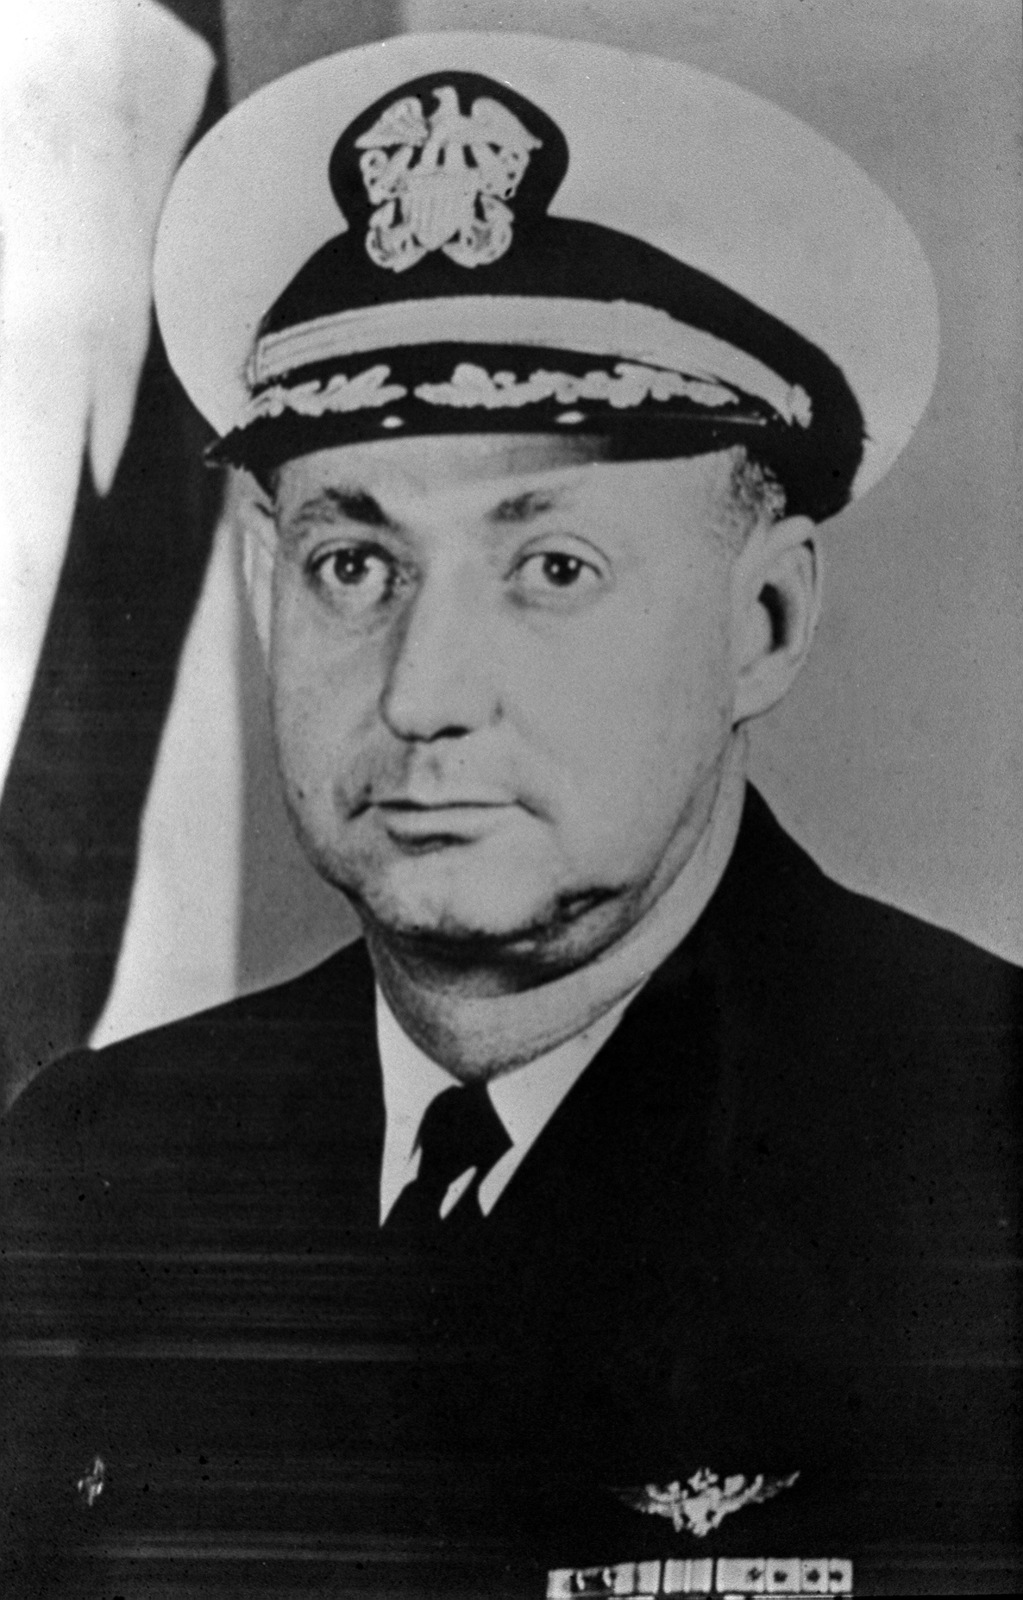 capt  william h  livingston  usn  covered  co  uss ranger  cv-61   1968-1969